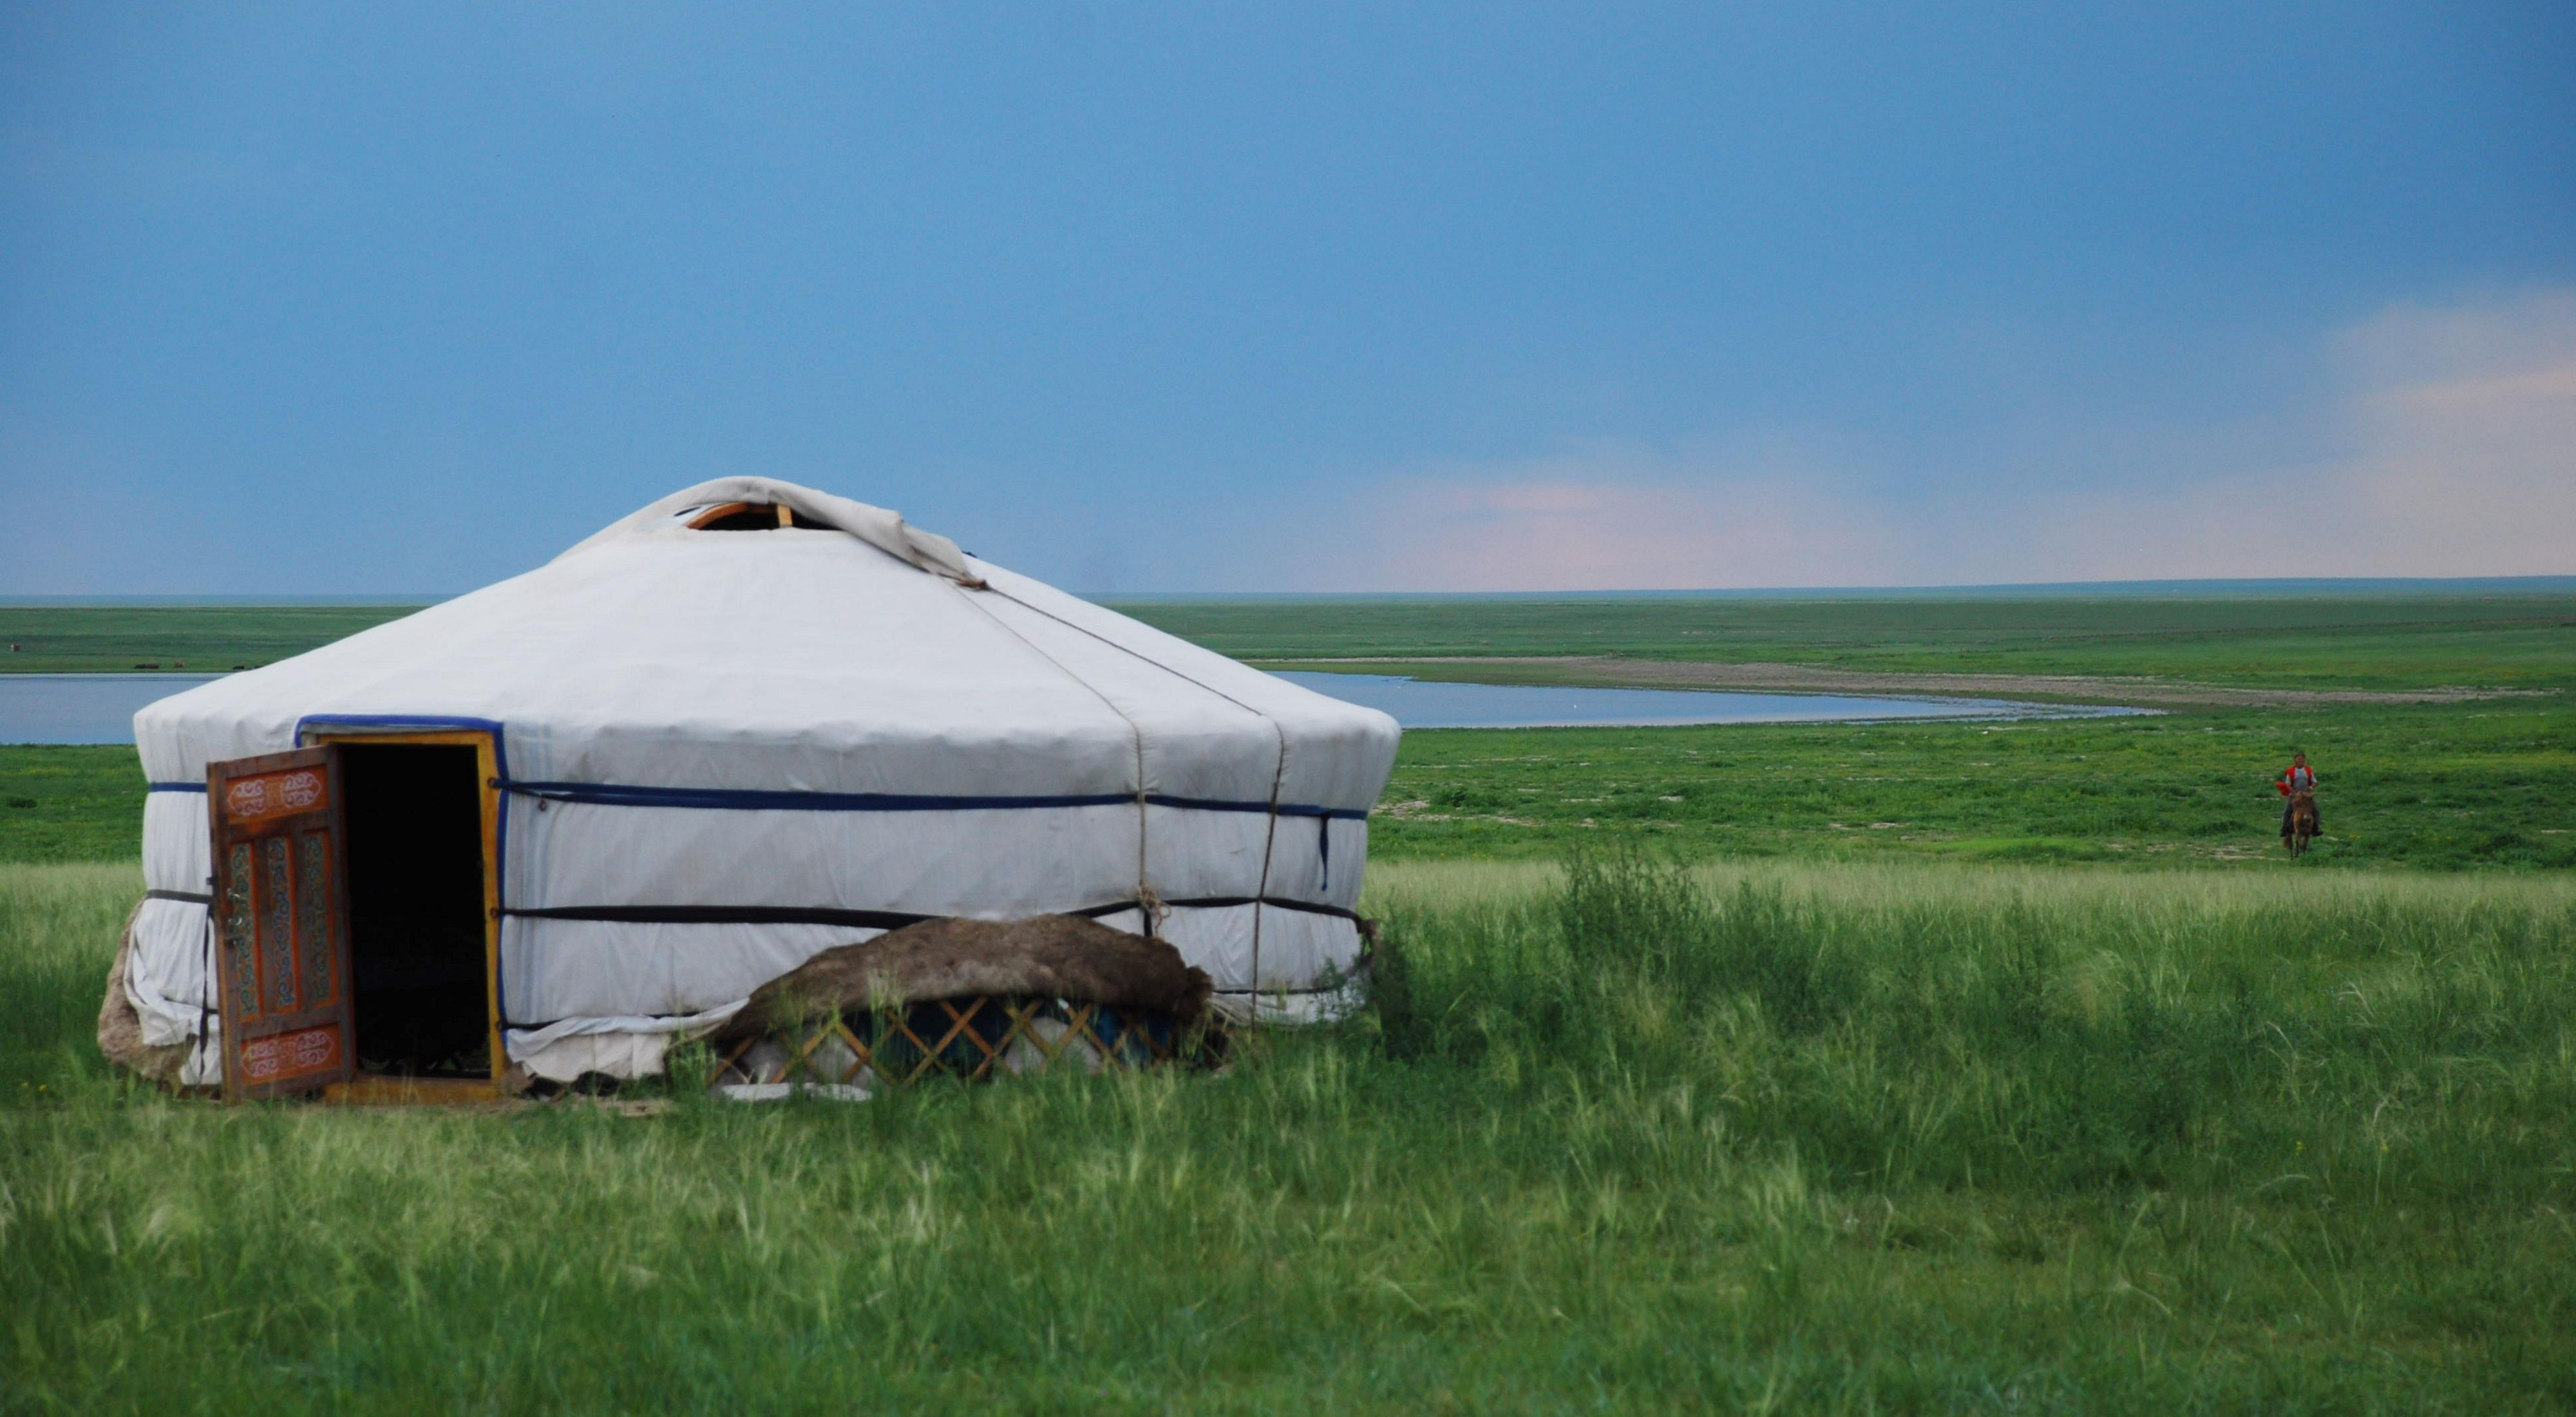 Yurts, called gers in Mongolia, are traditionally used by nomads on the steppes of Central Asia.